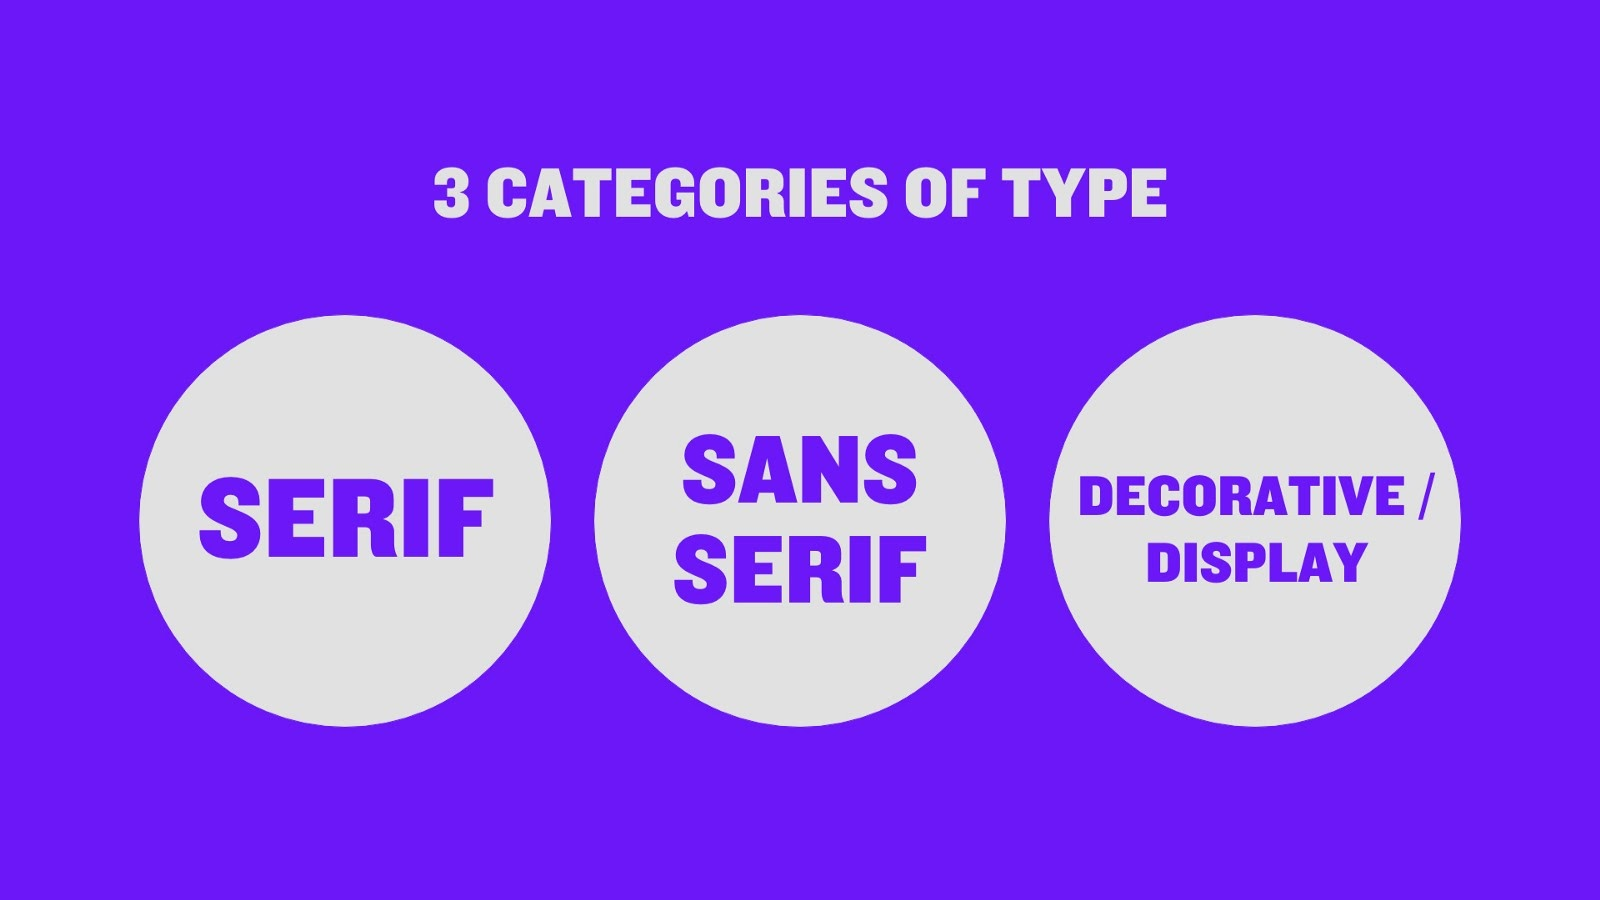 3 main categories of type